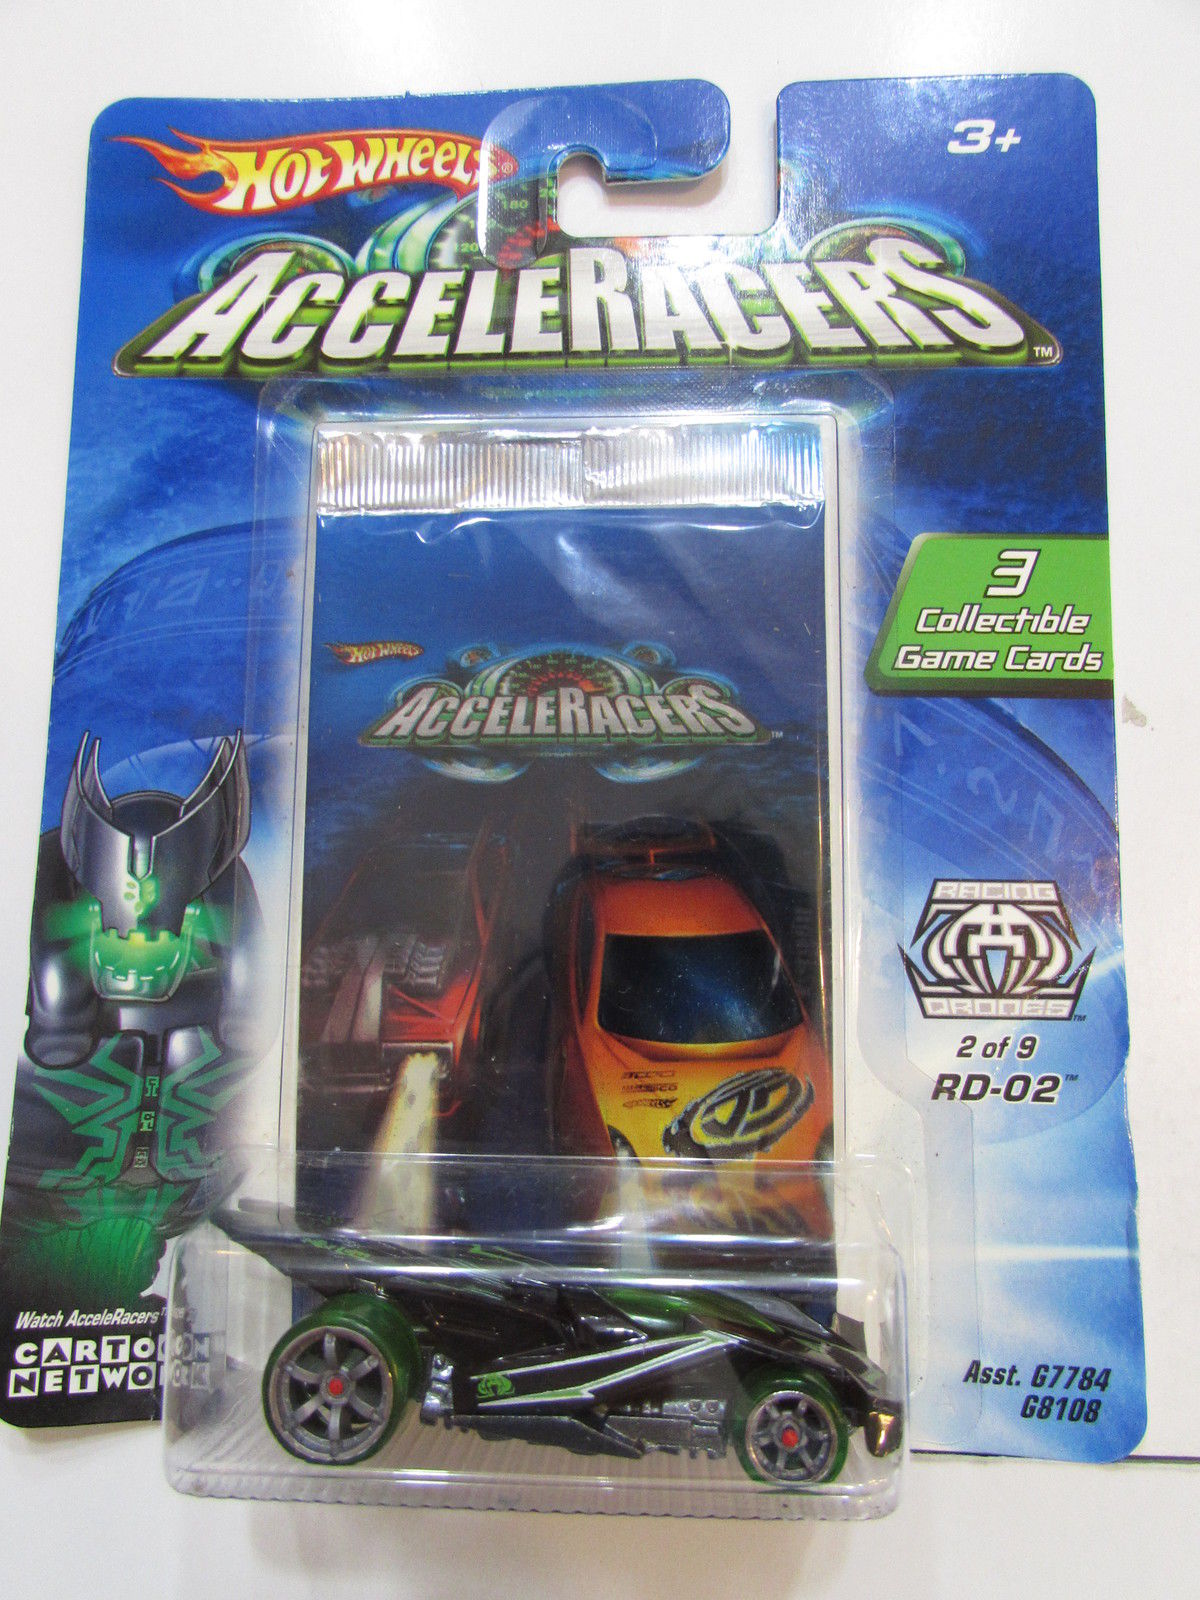 2004 HOT WHEELS ACCELERACERS RD - 02 #2/9 3 COLLECTIBLE GAME CARDS